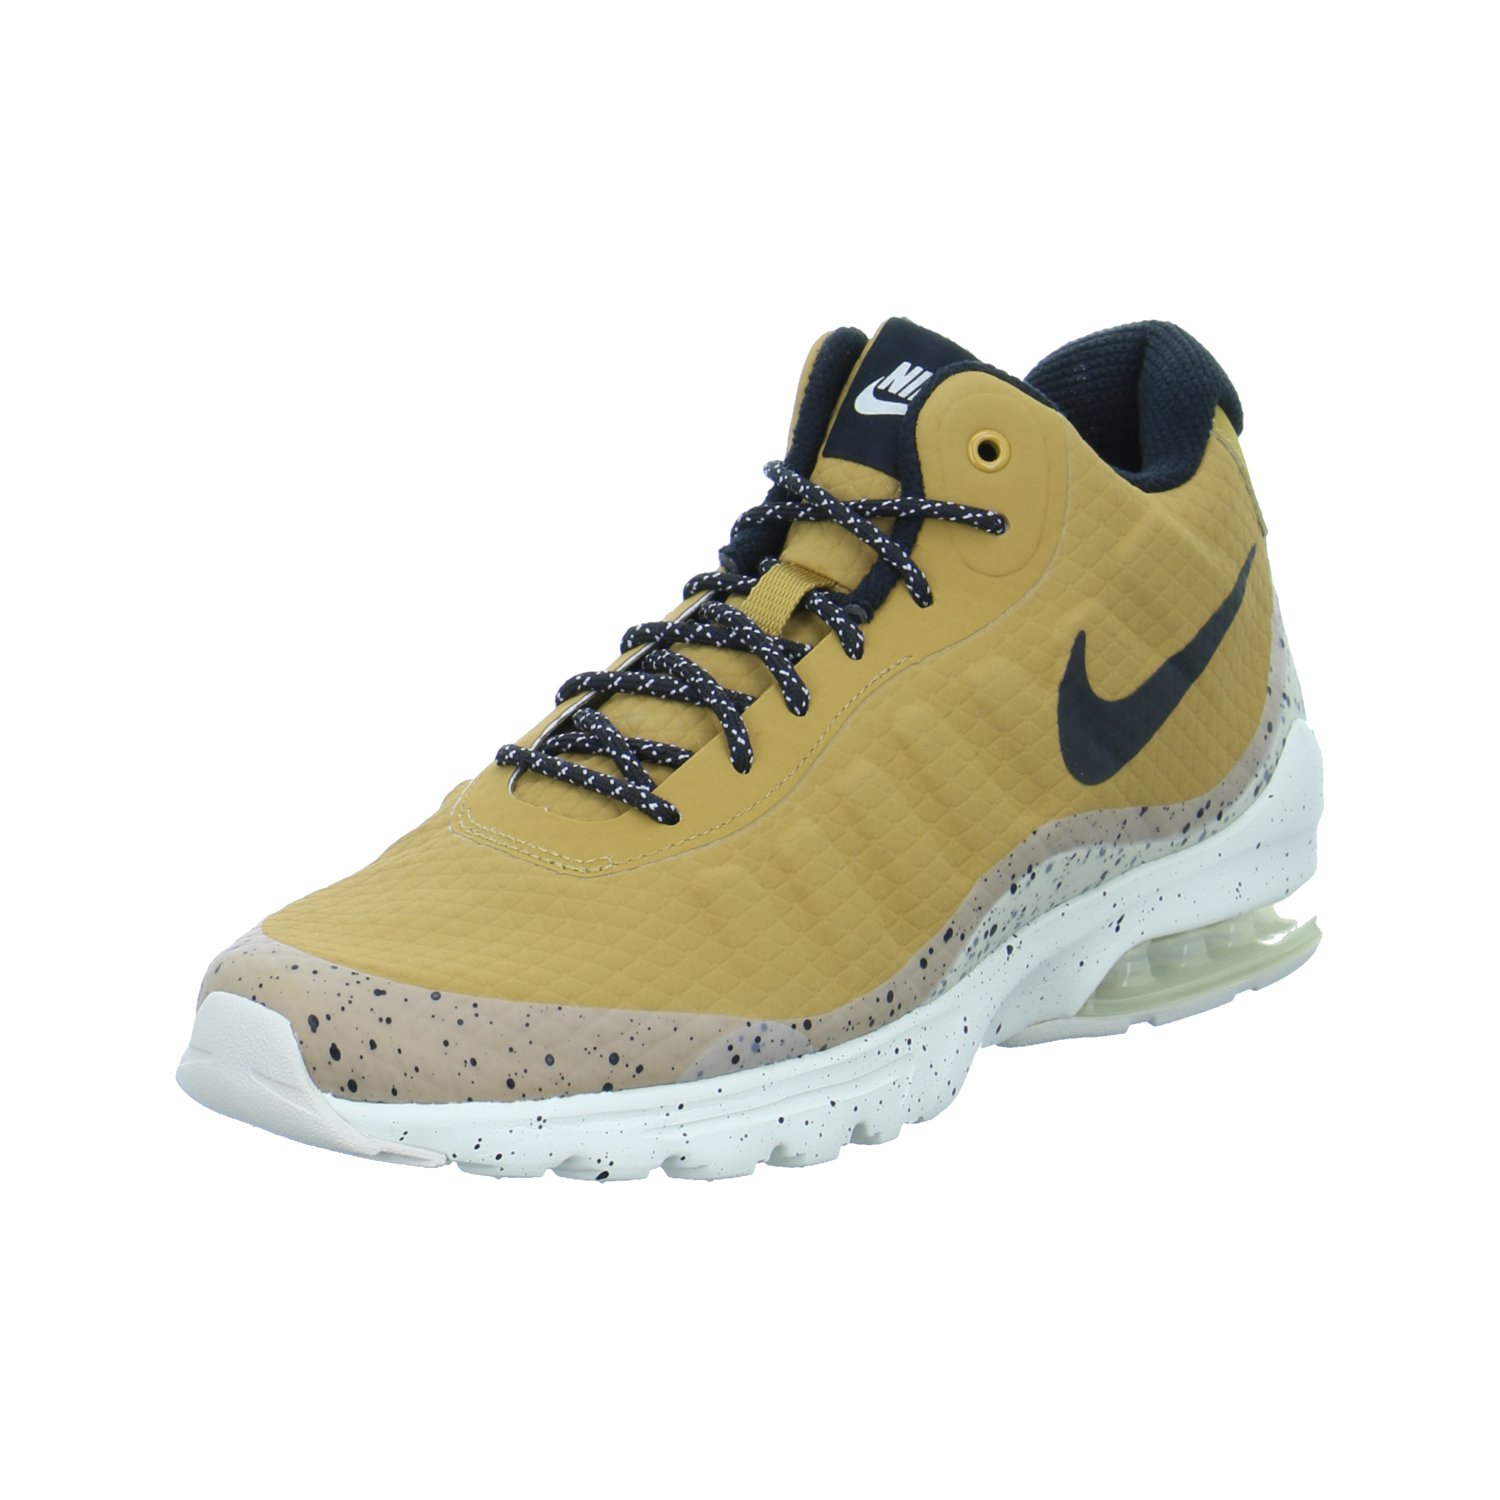 casual shoes latest design thoughts on Nike Air Max Invigor Mid Mens 858654-700 Size 11.5